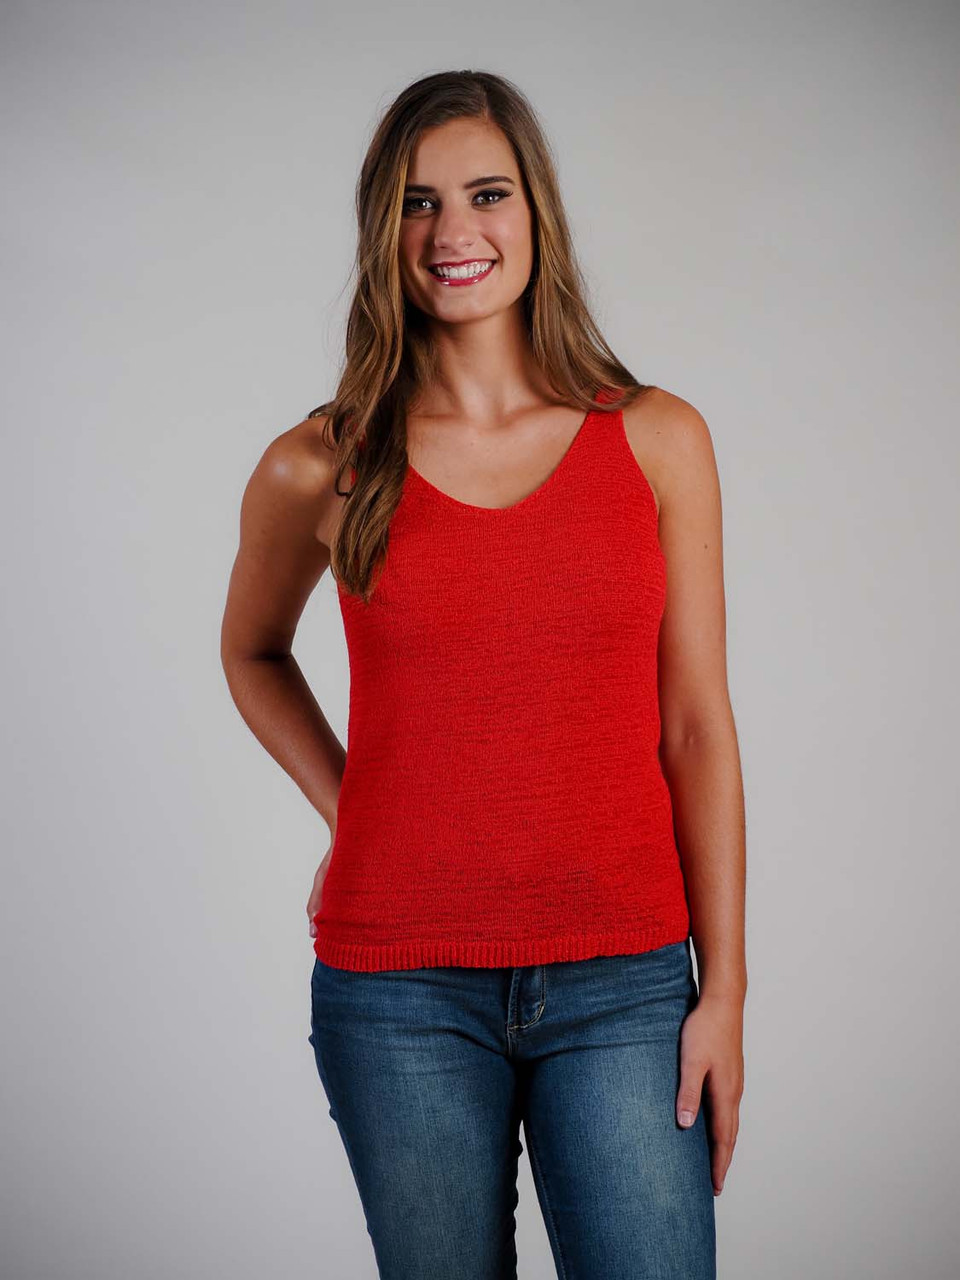 red sleeveless knit tank top